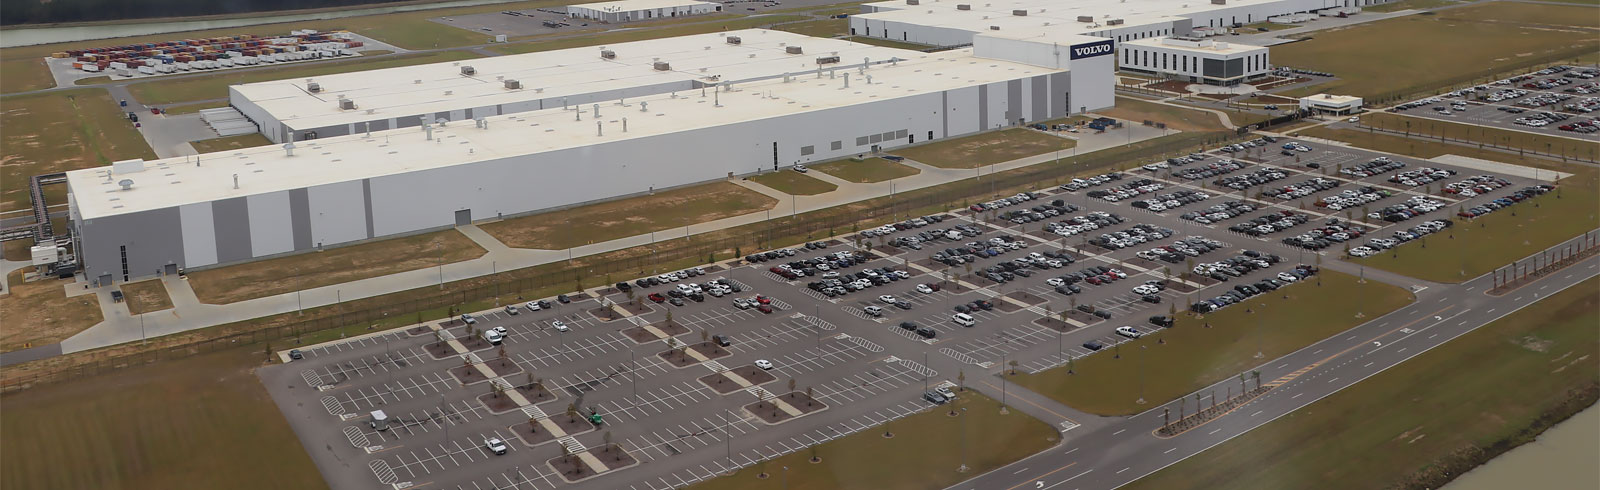 Volvo will expand its Ridgeville, SC campus with a battery plant for the electric XC90 SUV